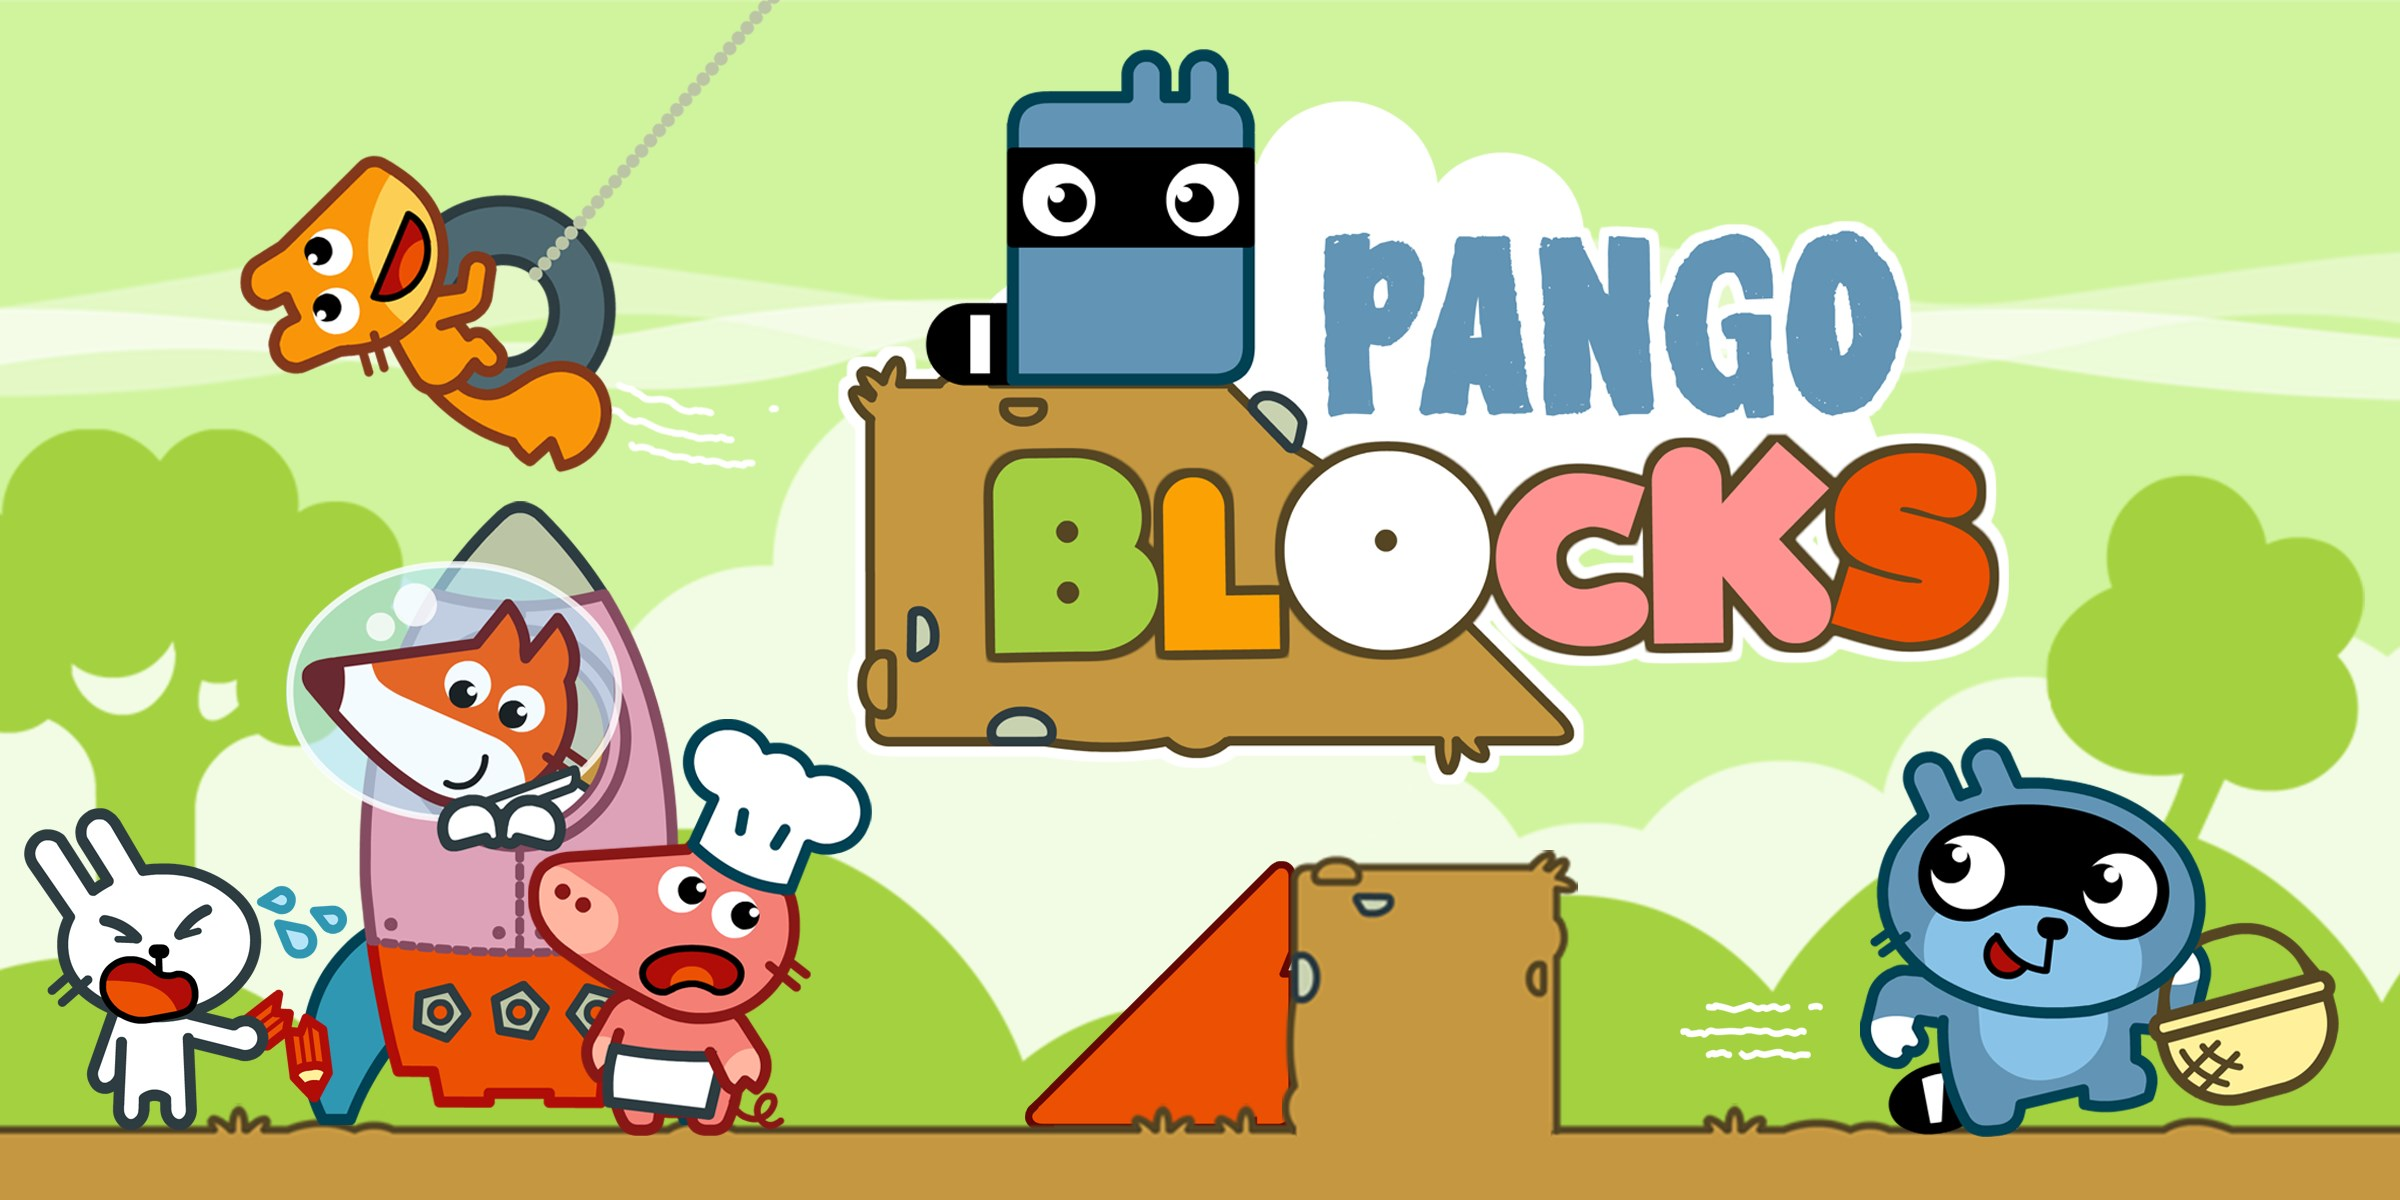 Win clipart kitchen window. Buy pango blocks microsoft